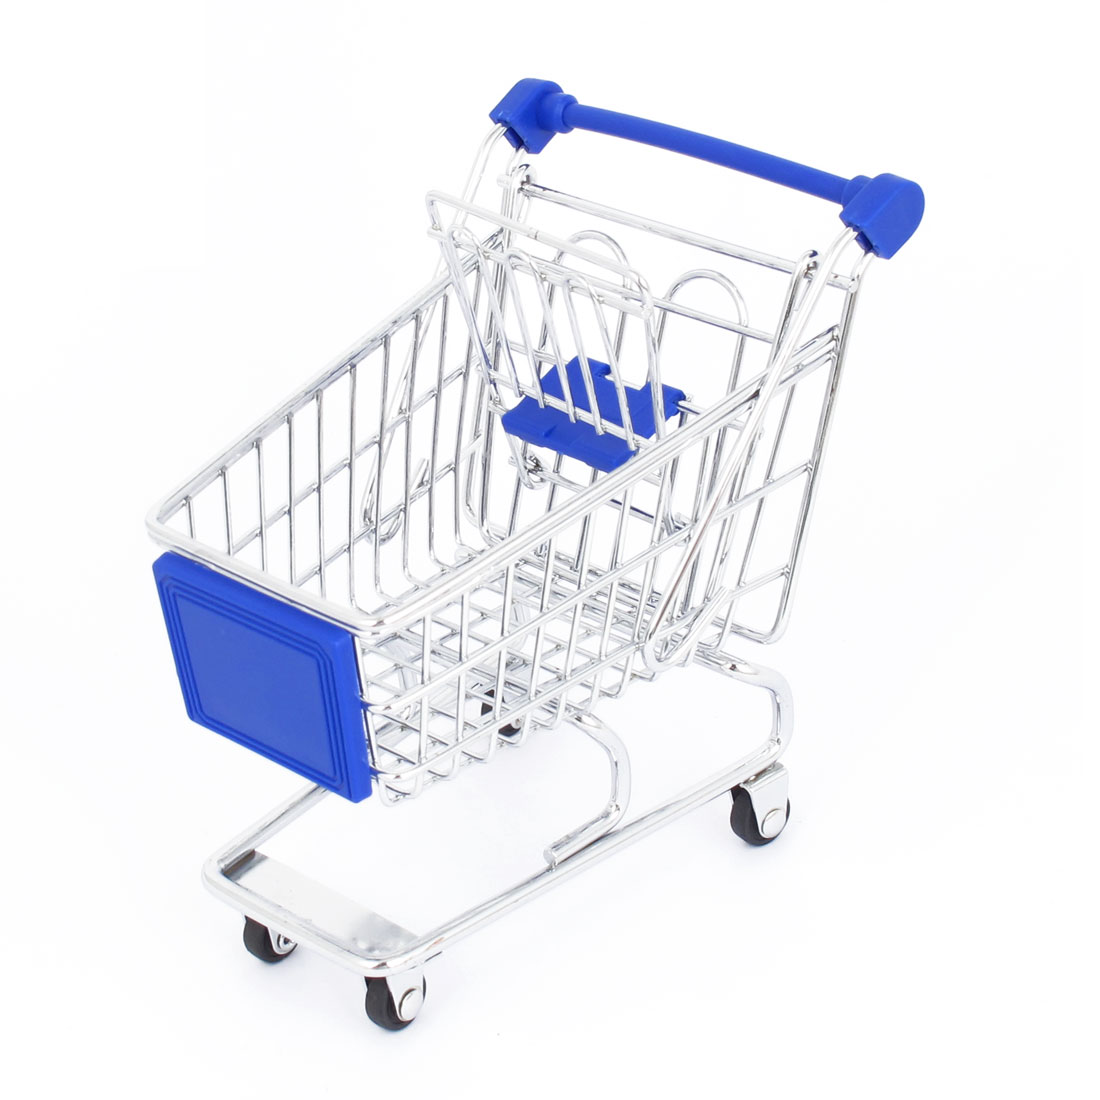 Pet Parrot Toy Supermarket Mini-Shopping Cart Mode Handcart Container Model Dark Blue